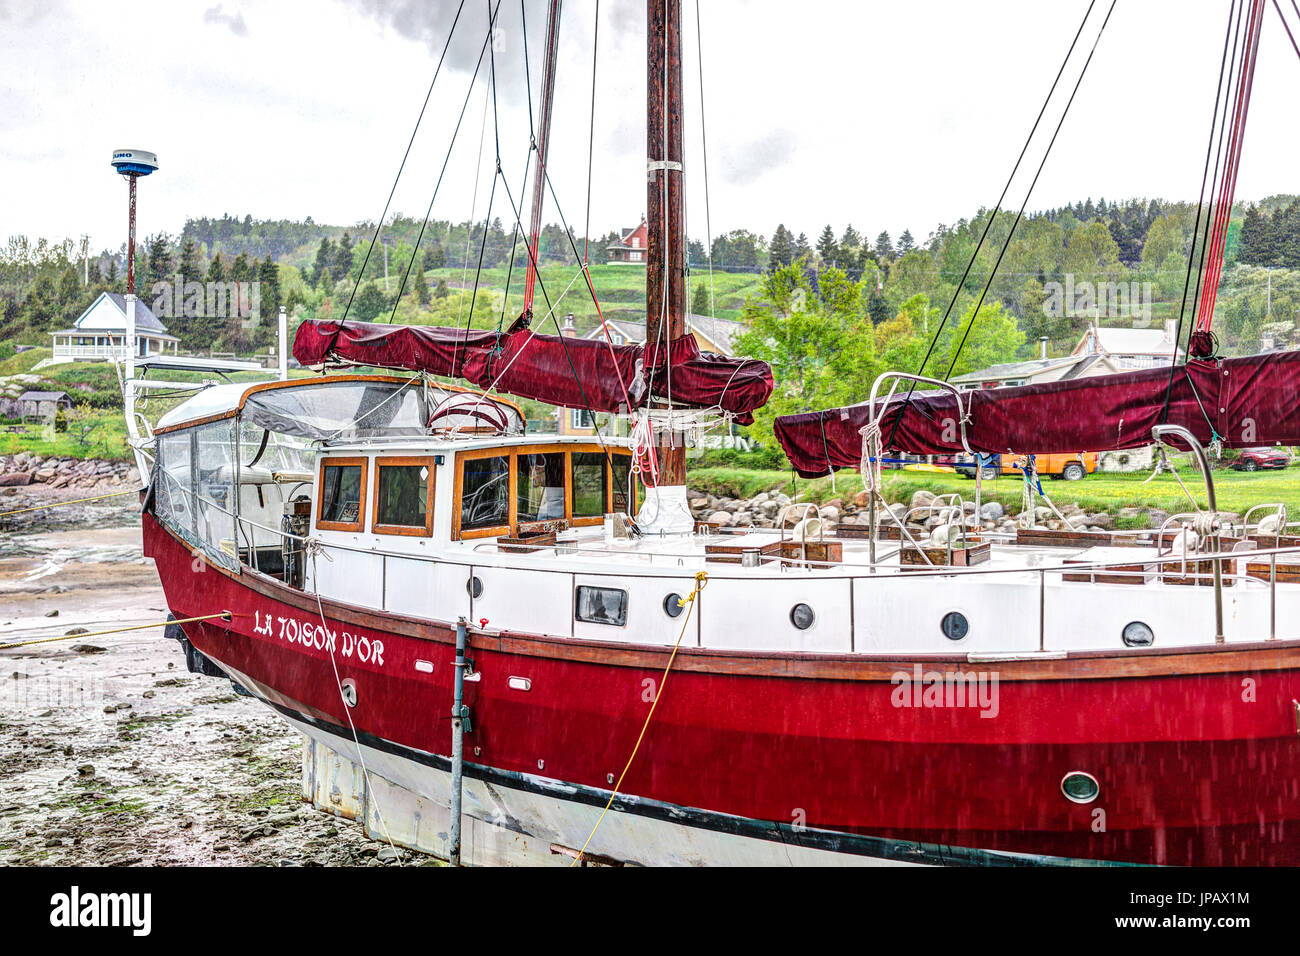 Port-au-Persil, Canada - June 2, 2017: Pier and harbor with red ship and sign La Toison D'Or in village of Quebec Stock Photo